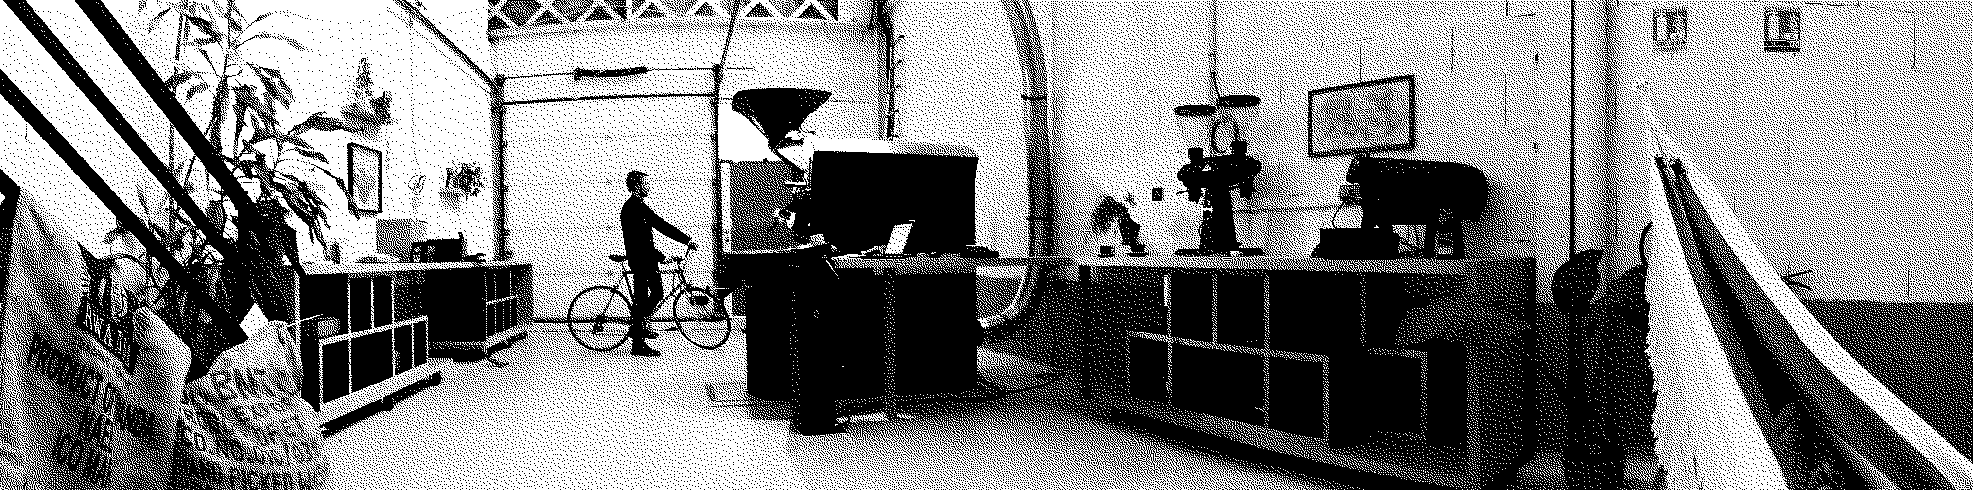 photography-roastery-black-white-bitmap.png